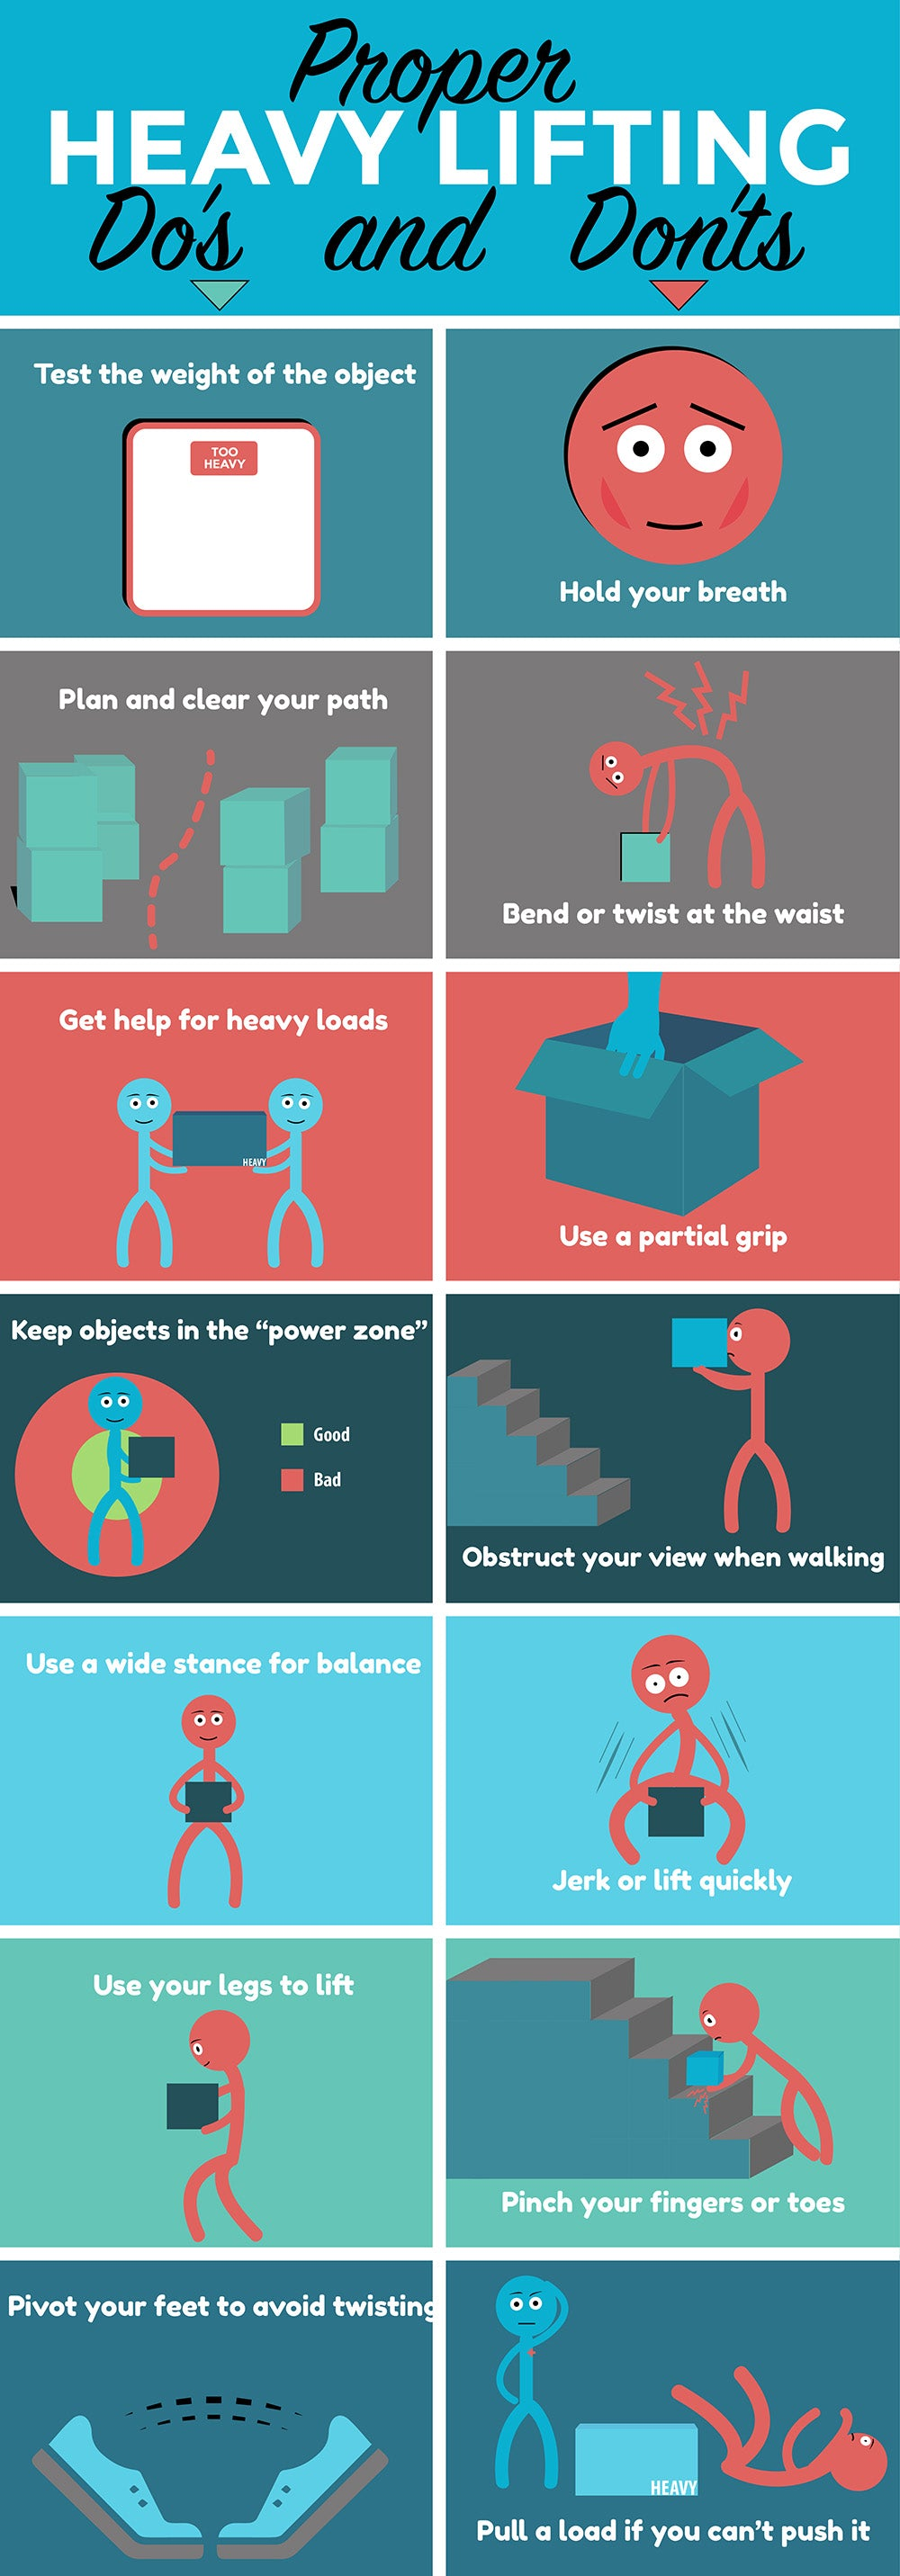 funny infographic on how to properly lift heavy objects